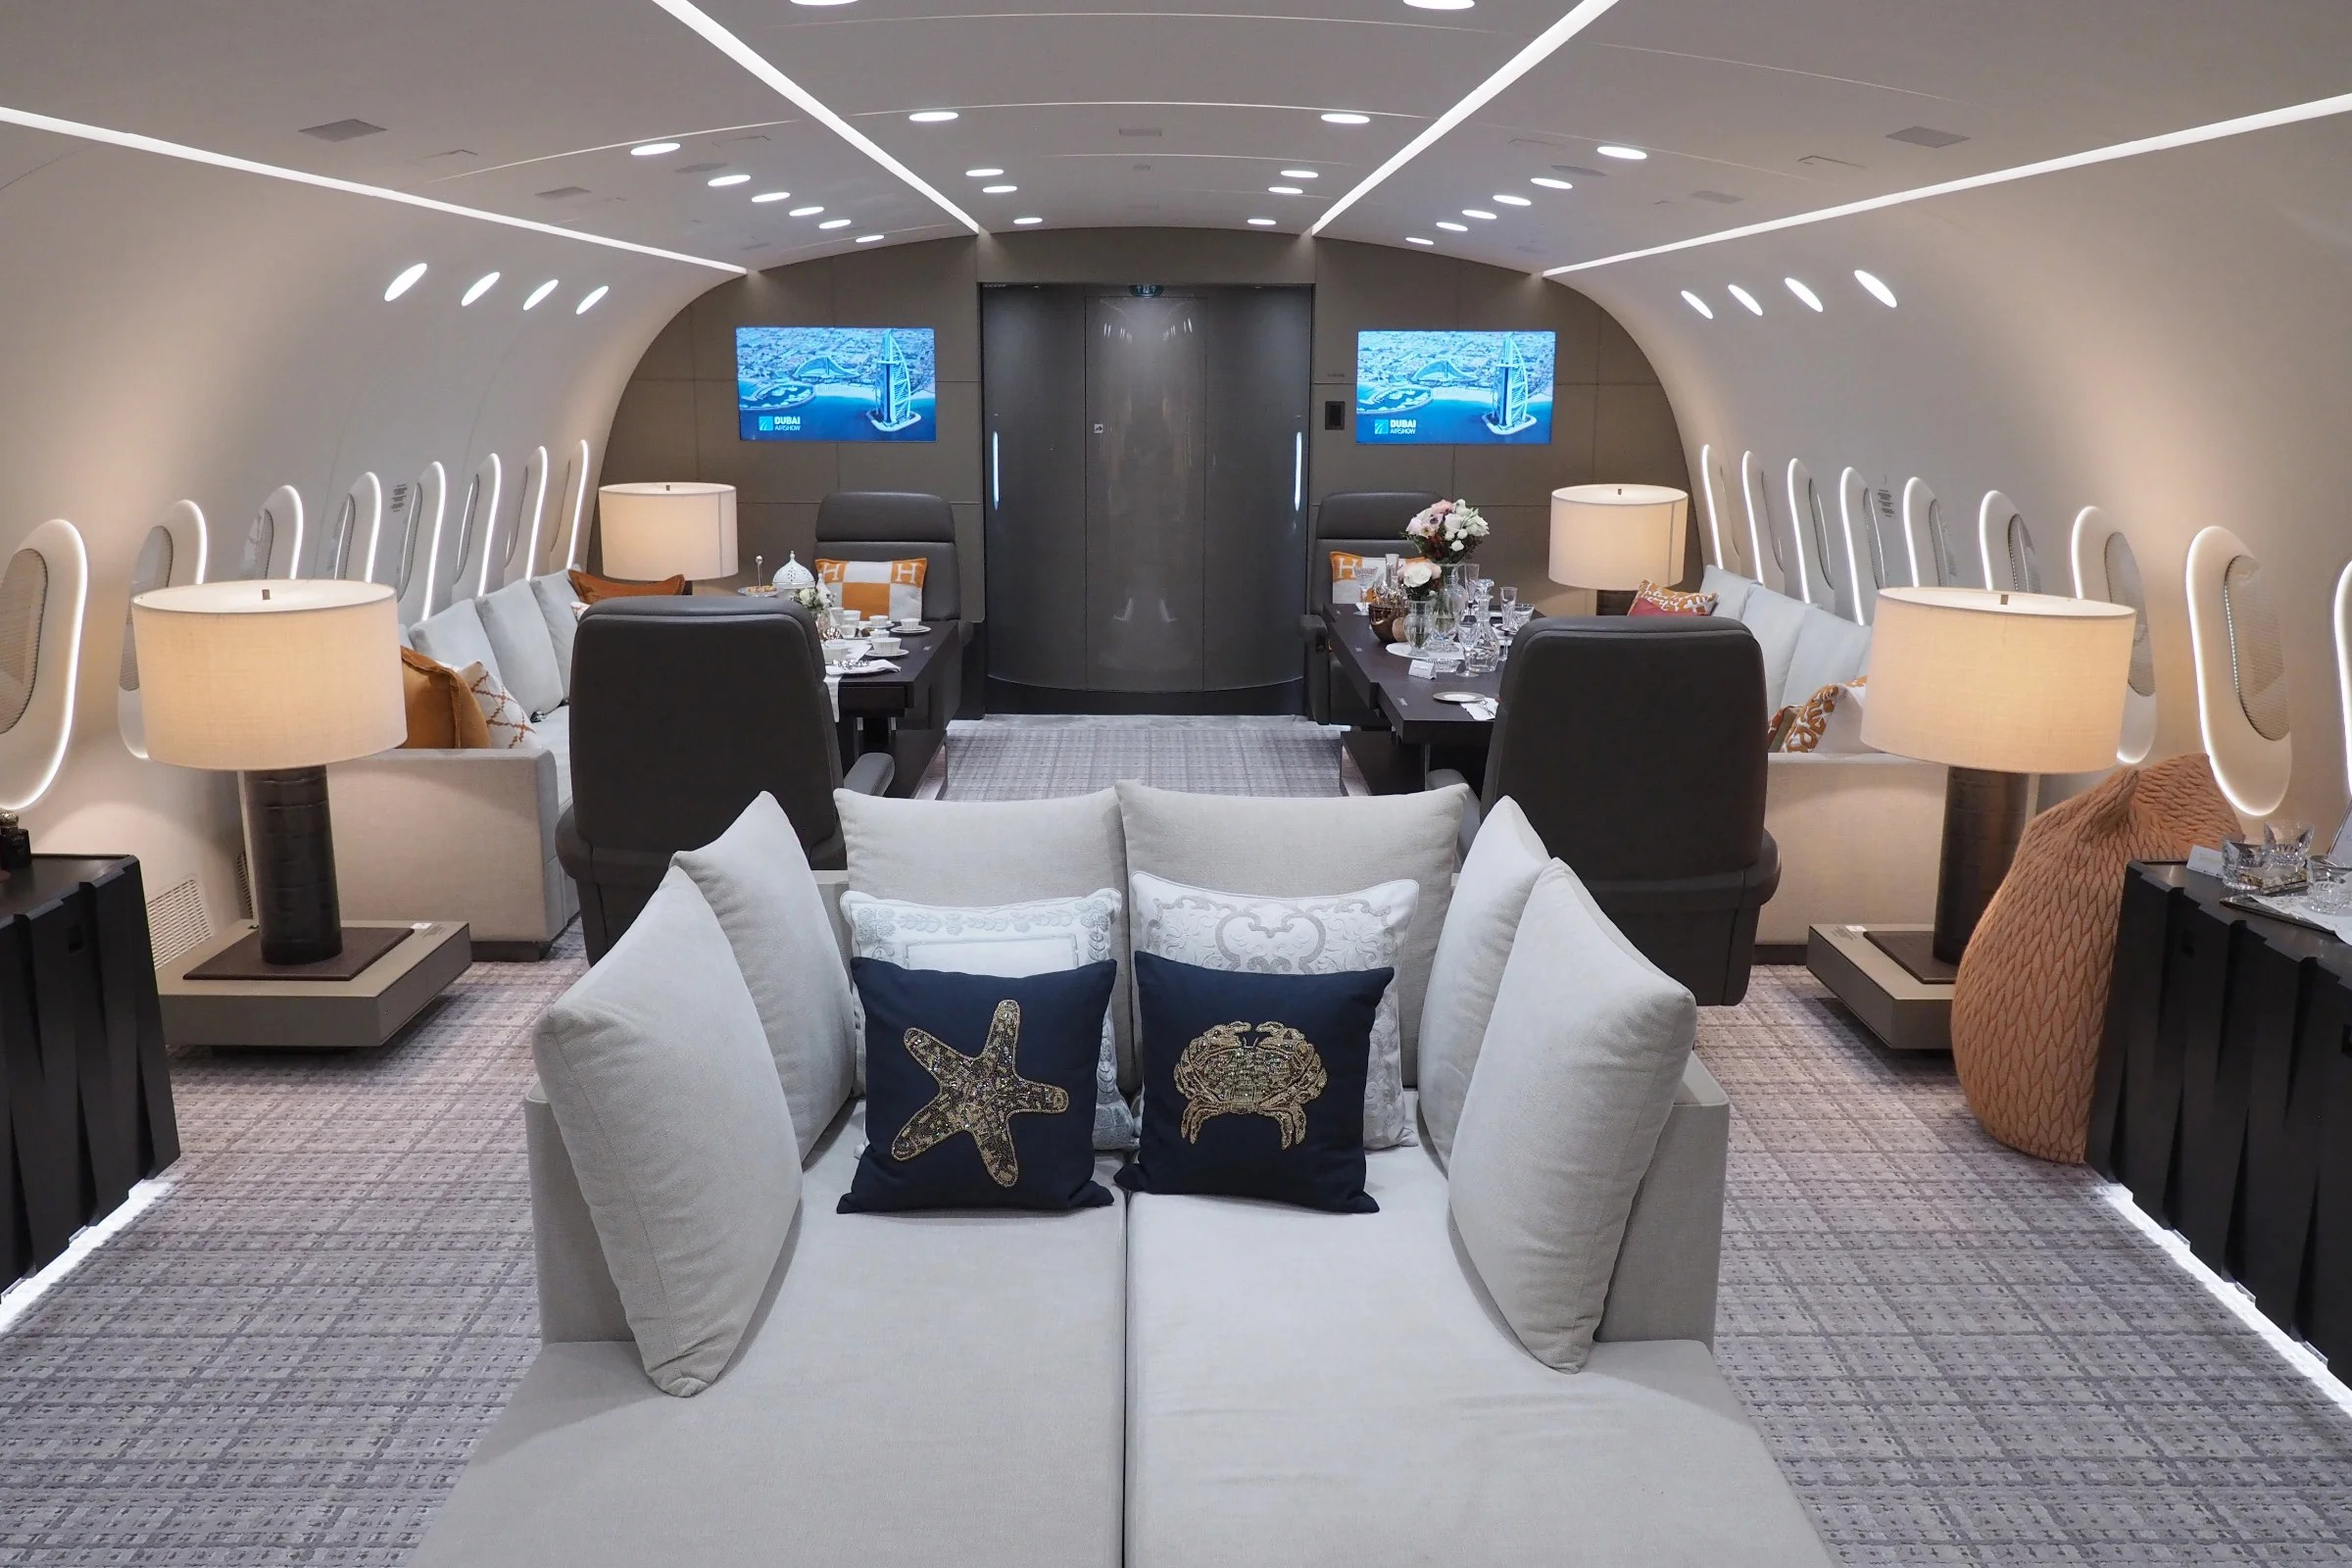 This Private Dreamliner Is the Ultimate $300 Million Flying Home